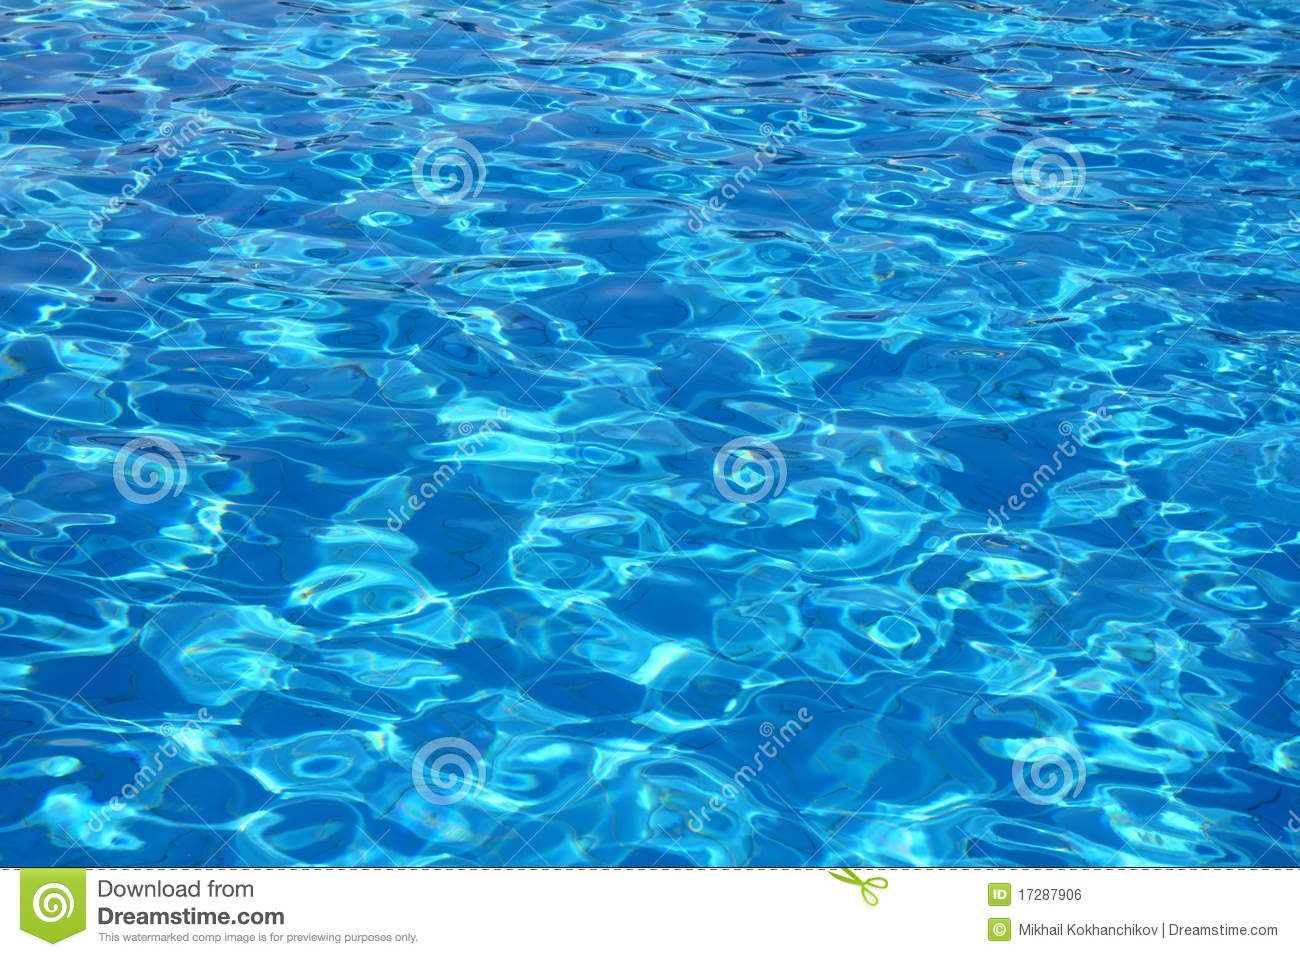 Ripple turquoise water background royalty free stock image for Blue water parts piscine